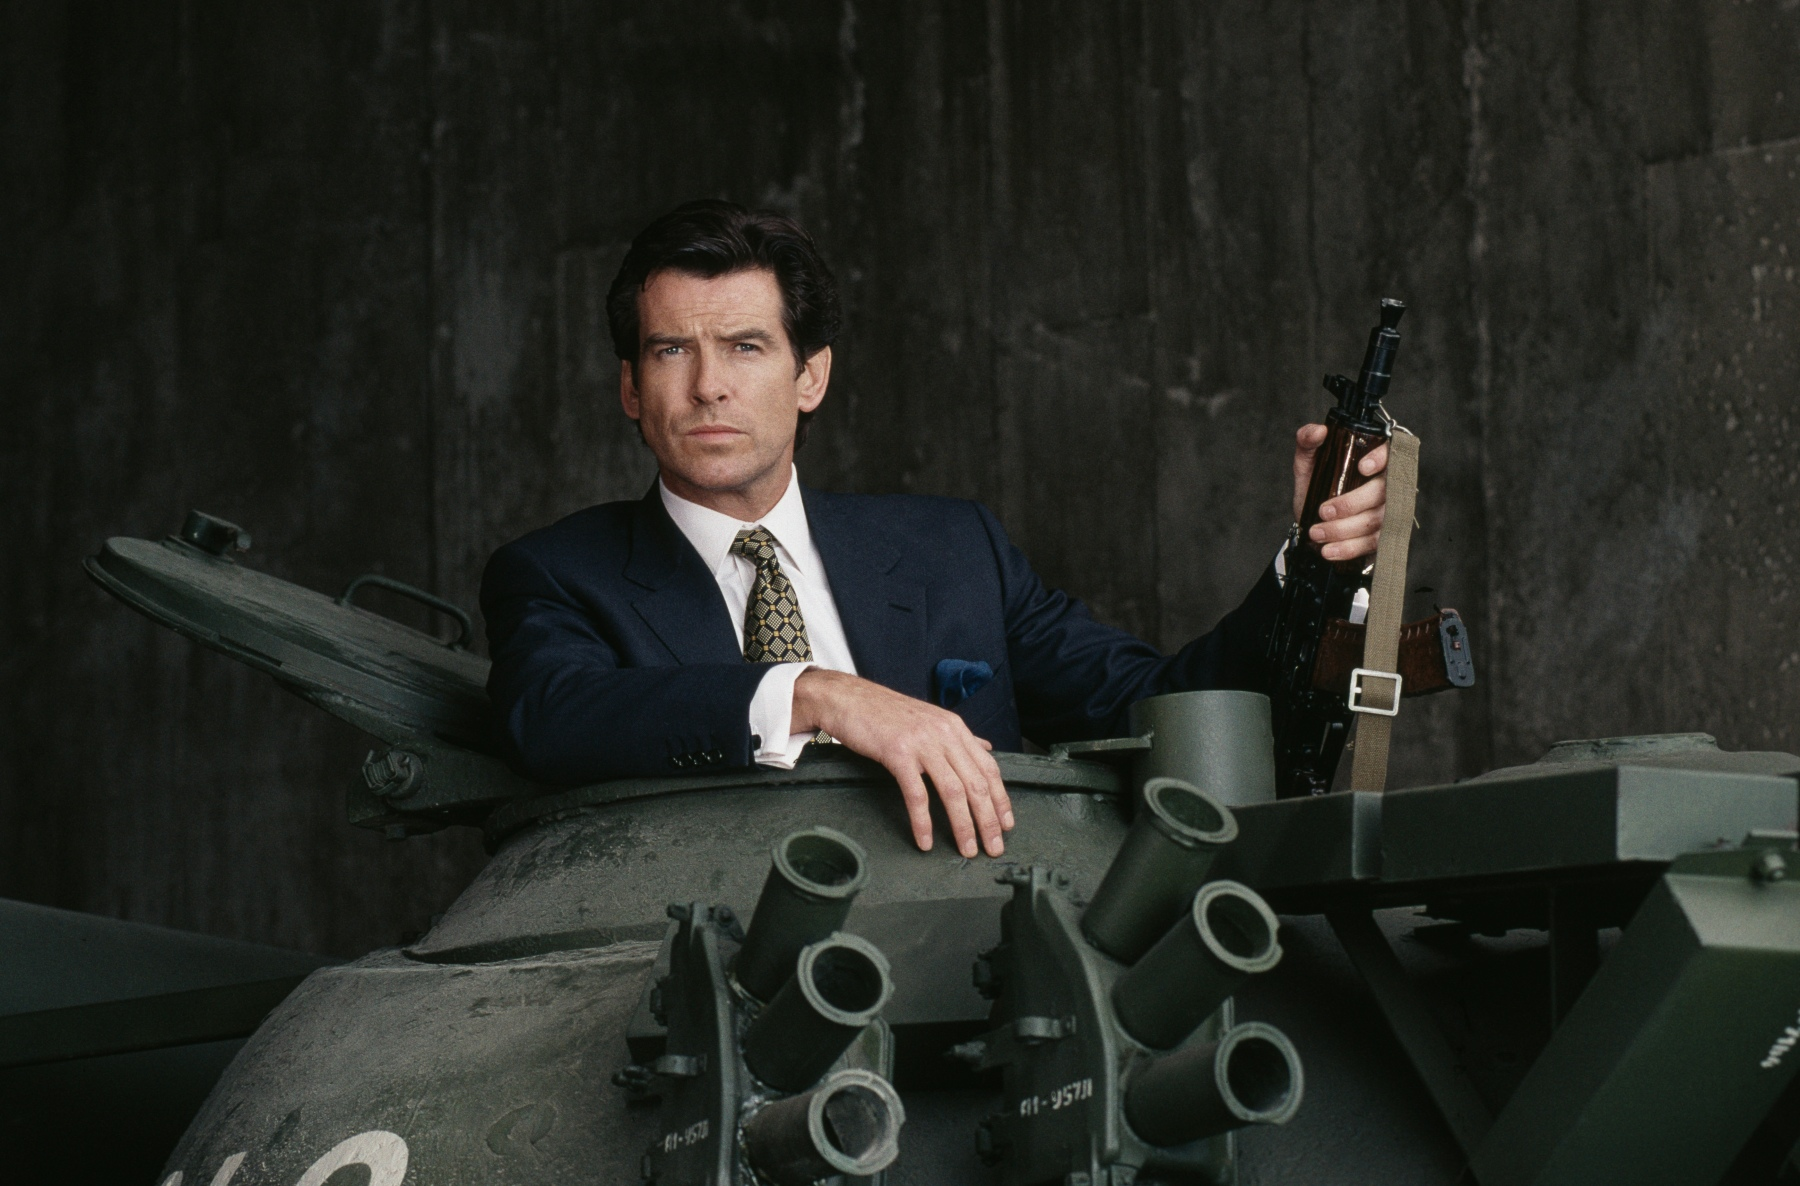 Pierce Brosnan poses in a publicity still for the James Bond film 'GoldenEye', 1995. (Photo by Keith Hamshere/Getty Images)